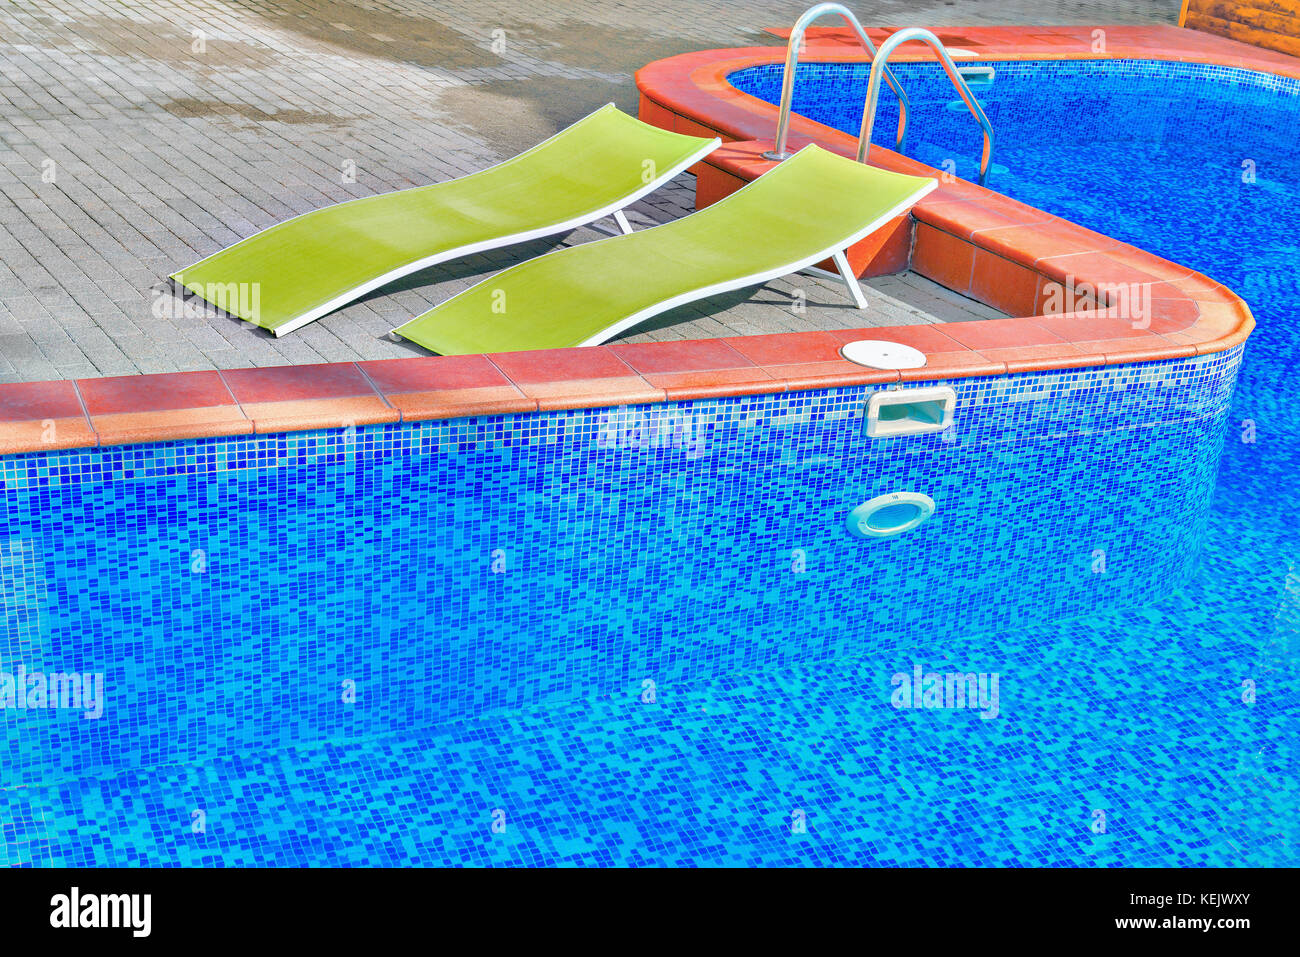 Two chaise-longues by the swimming pool on the hotel territory. - Stock Image